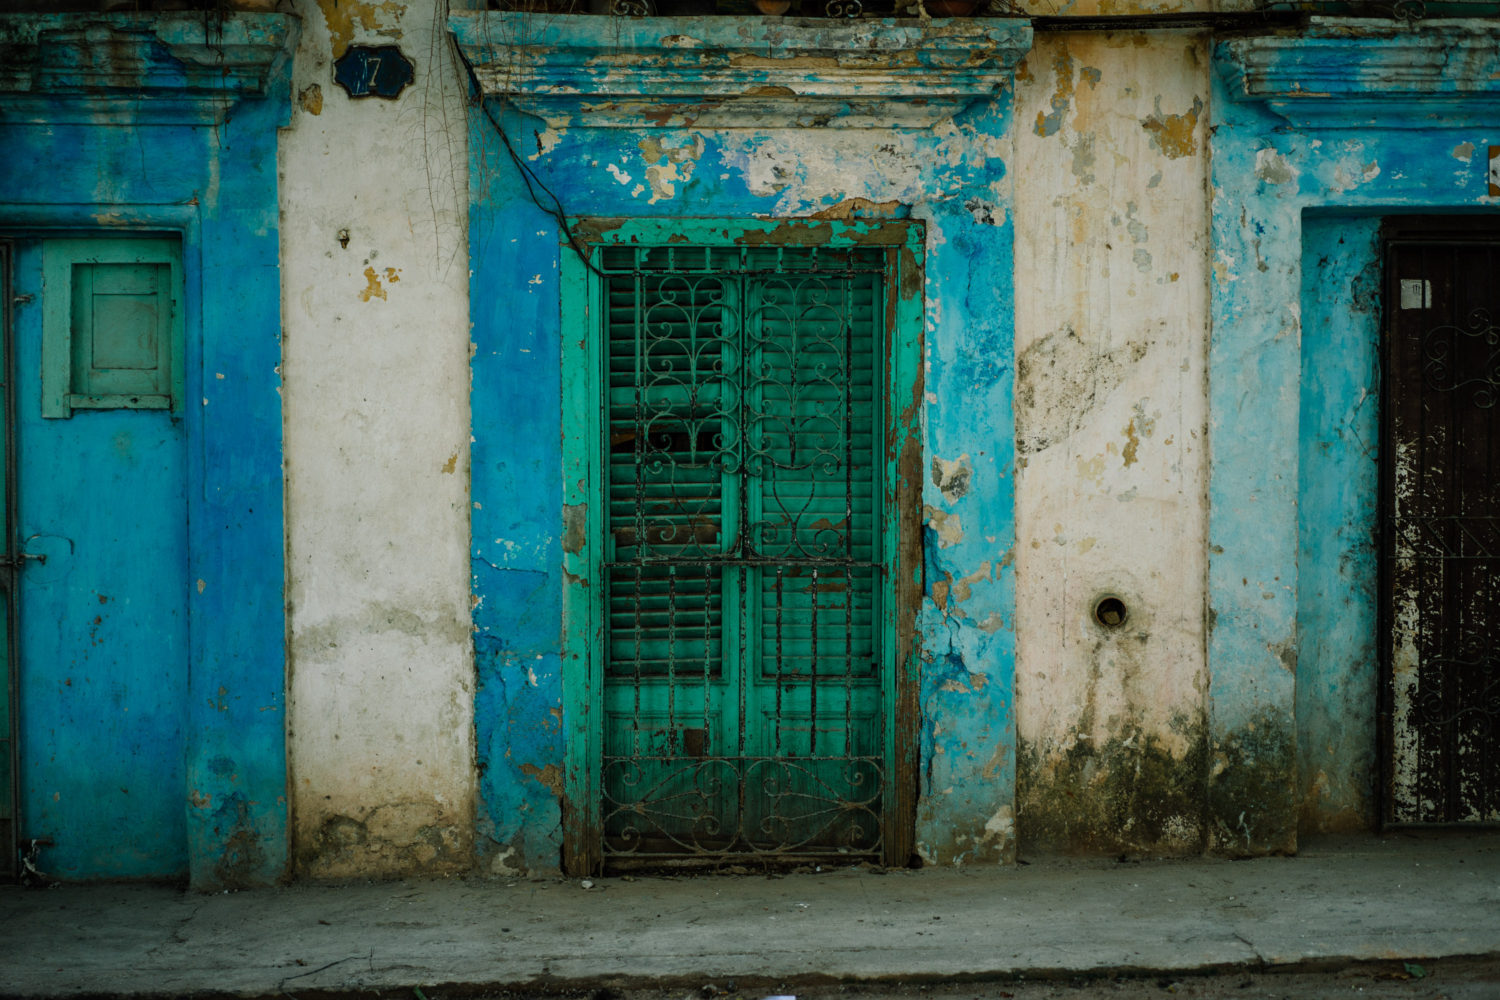 la-habana-dante-vincent-photography-64